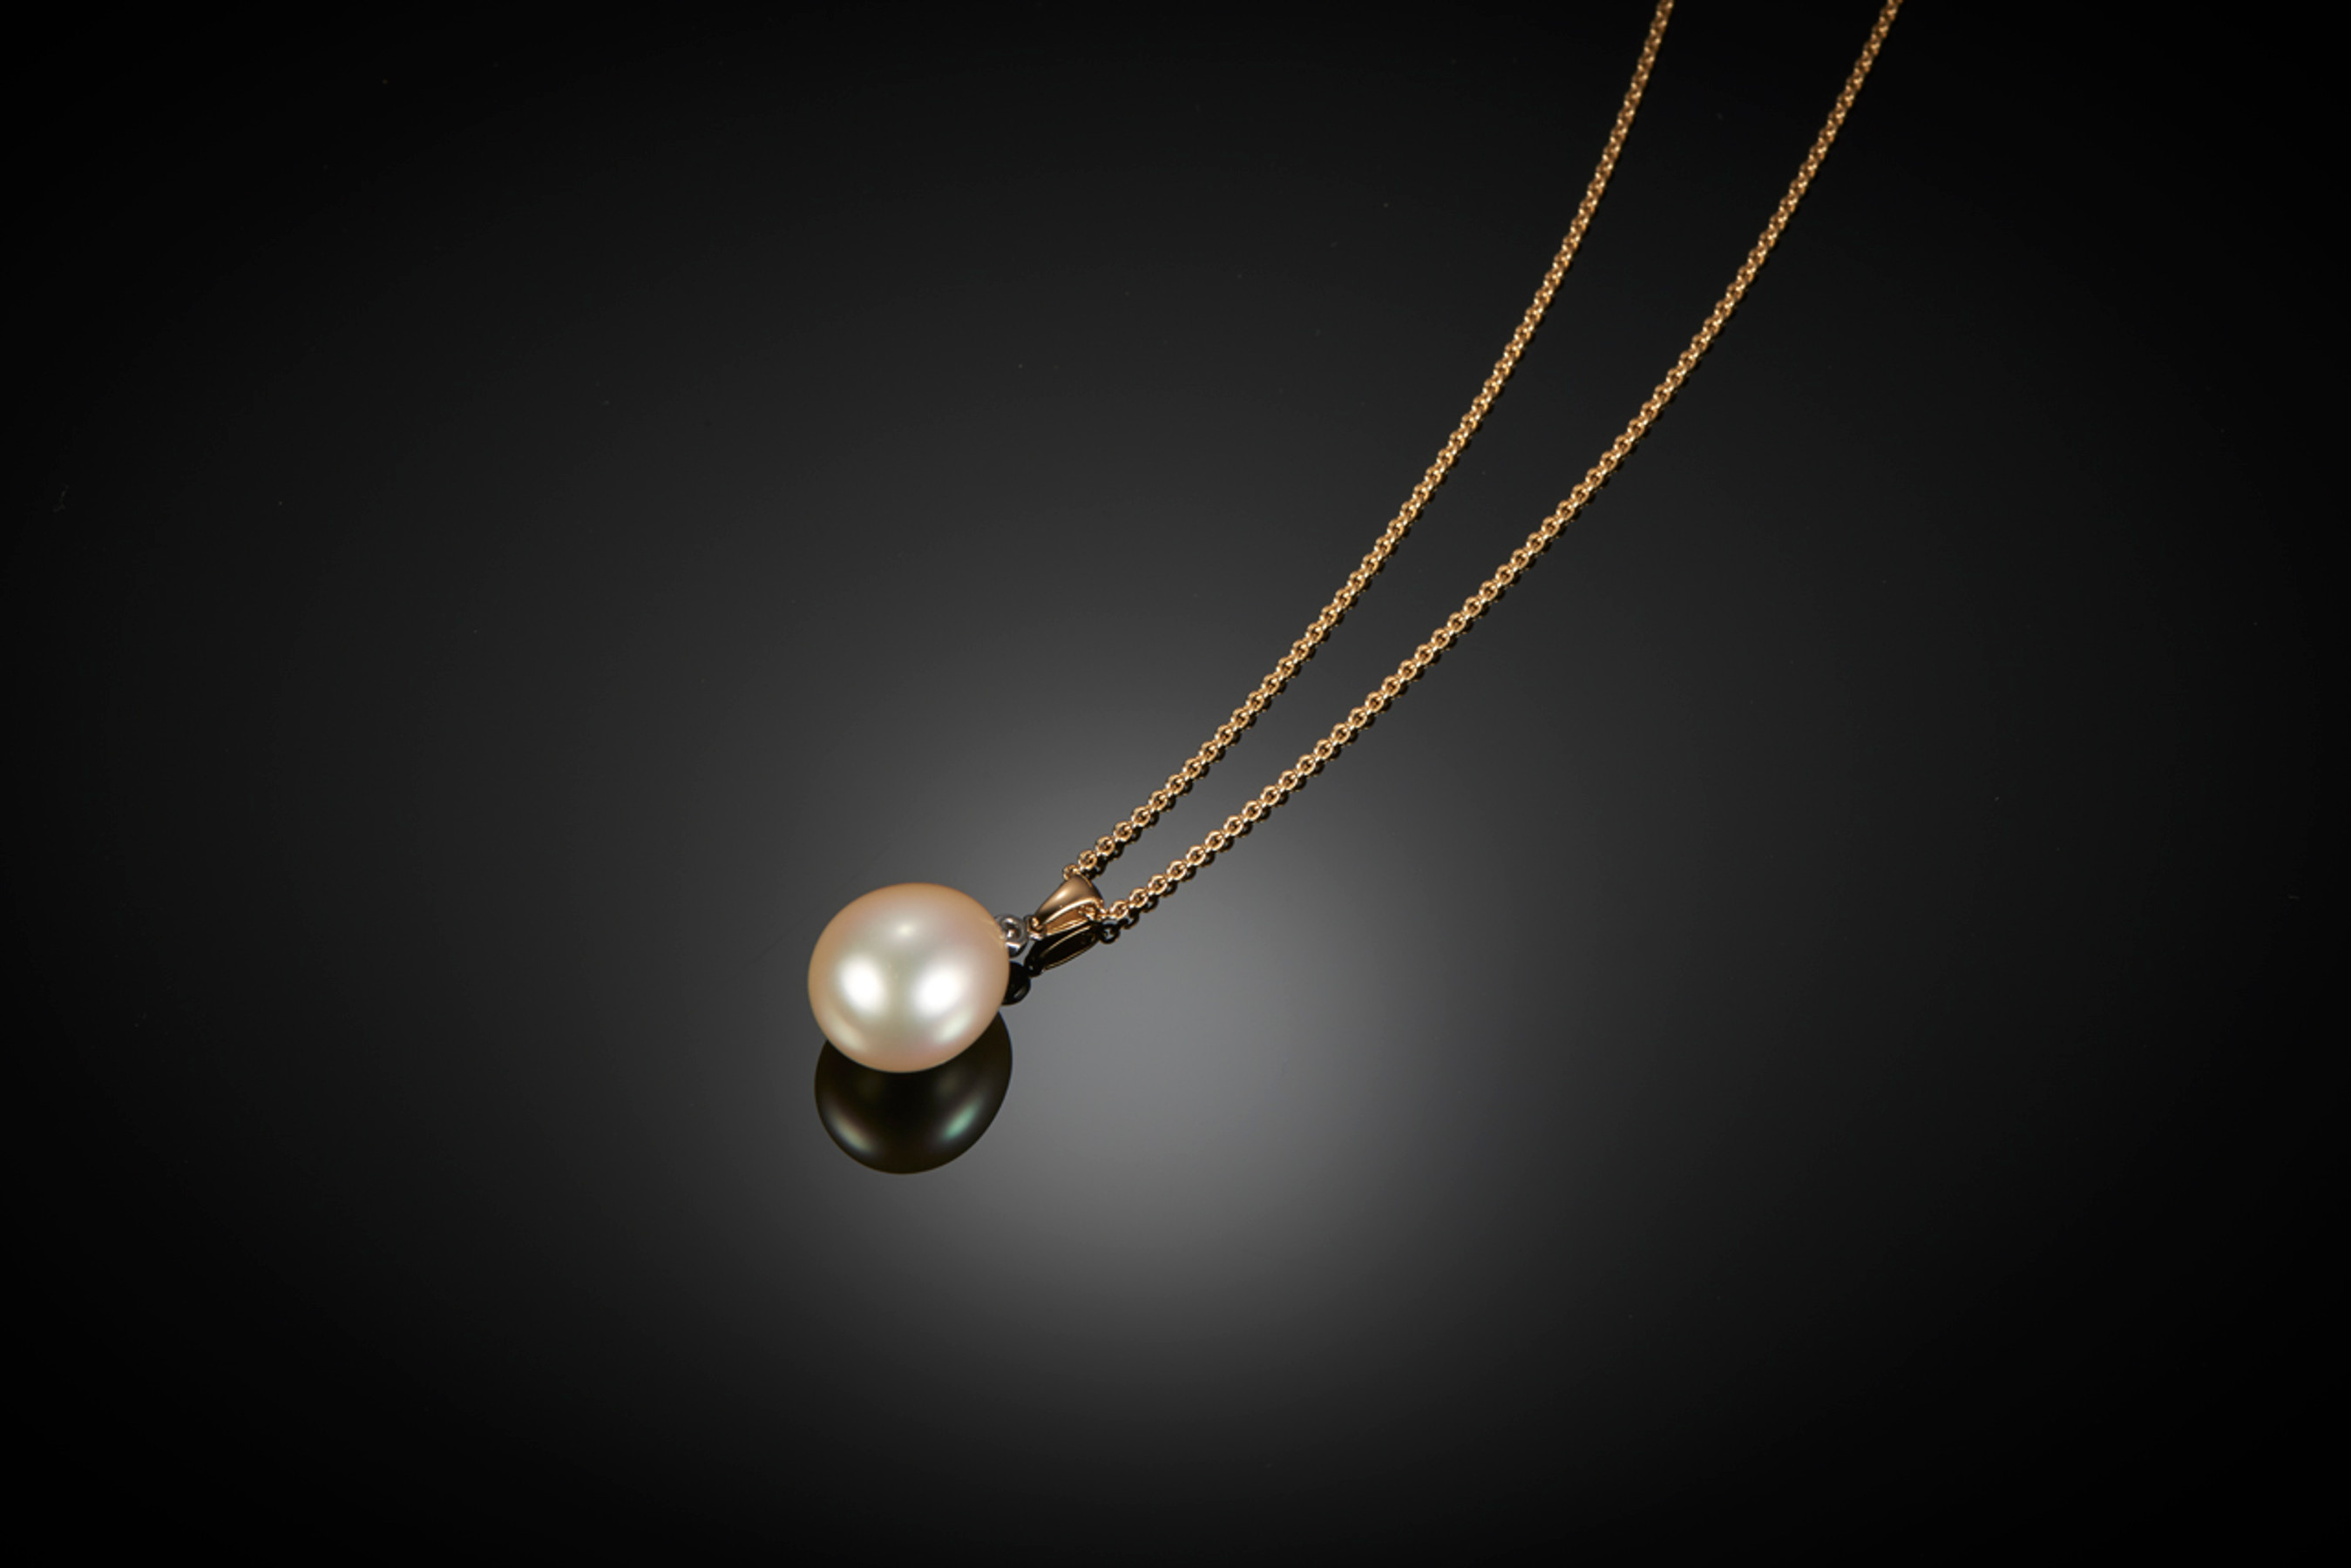 Oval South Sea Pearl and Diamond Pendant. A rare egg shaped pearl with diamond top and gold bale. Pearl size: 16.5mm x 14mm Diamond weight: 0.07cts  Tracelink chain: 50cm, 18ct yellow gold, 4.53gms